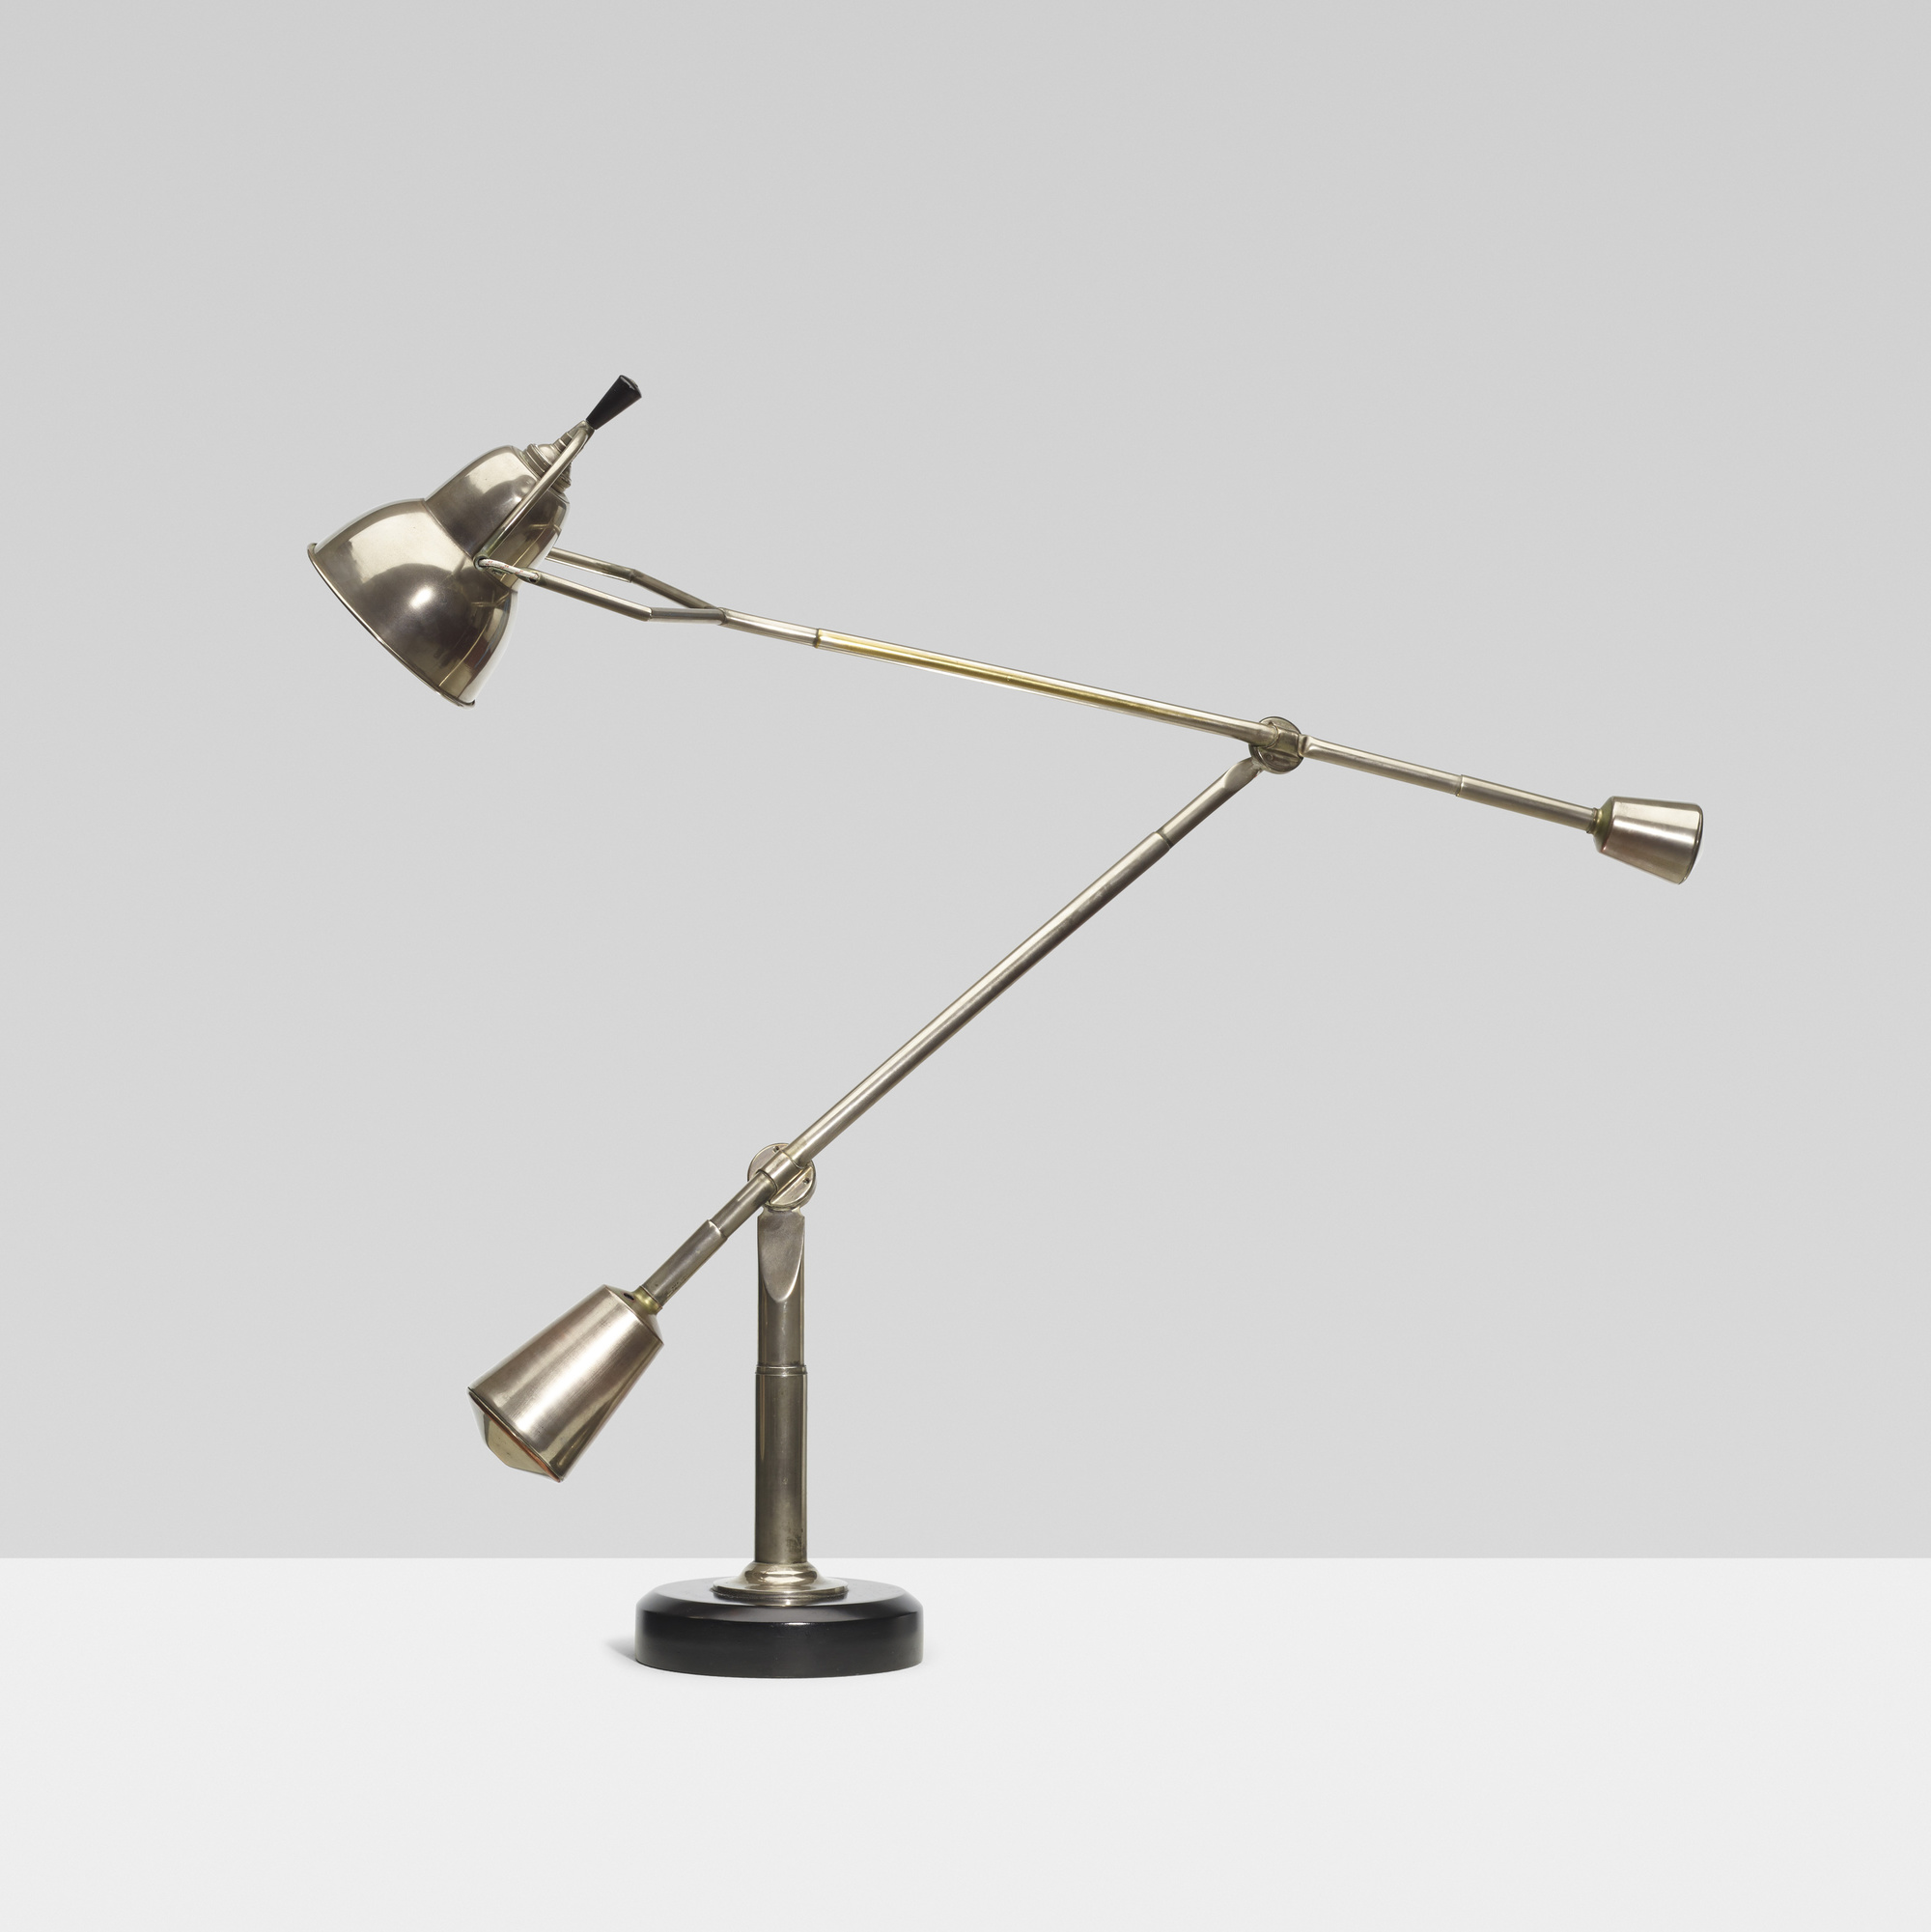 140: Edouard-Wilfred Buquet / table lamp (1 of 3)